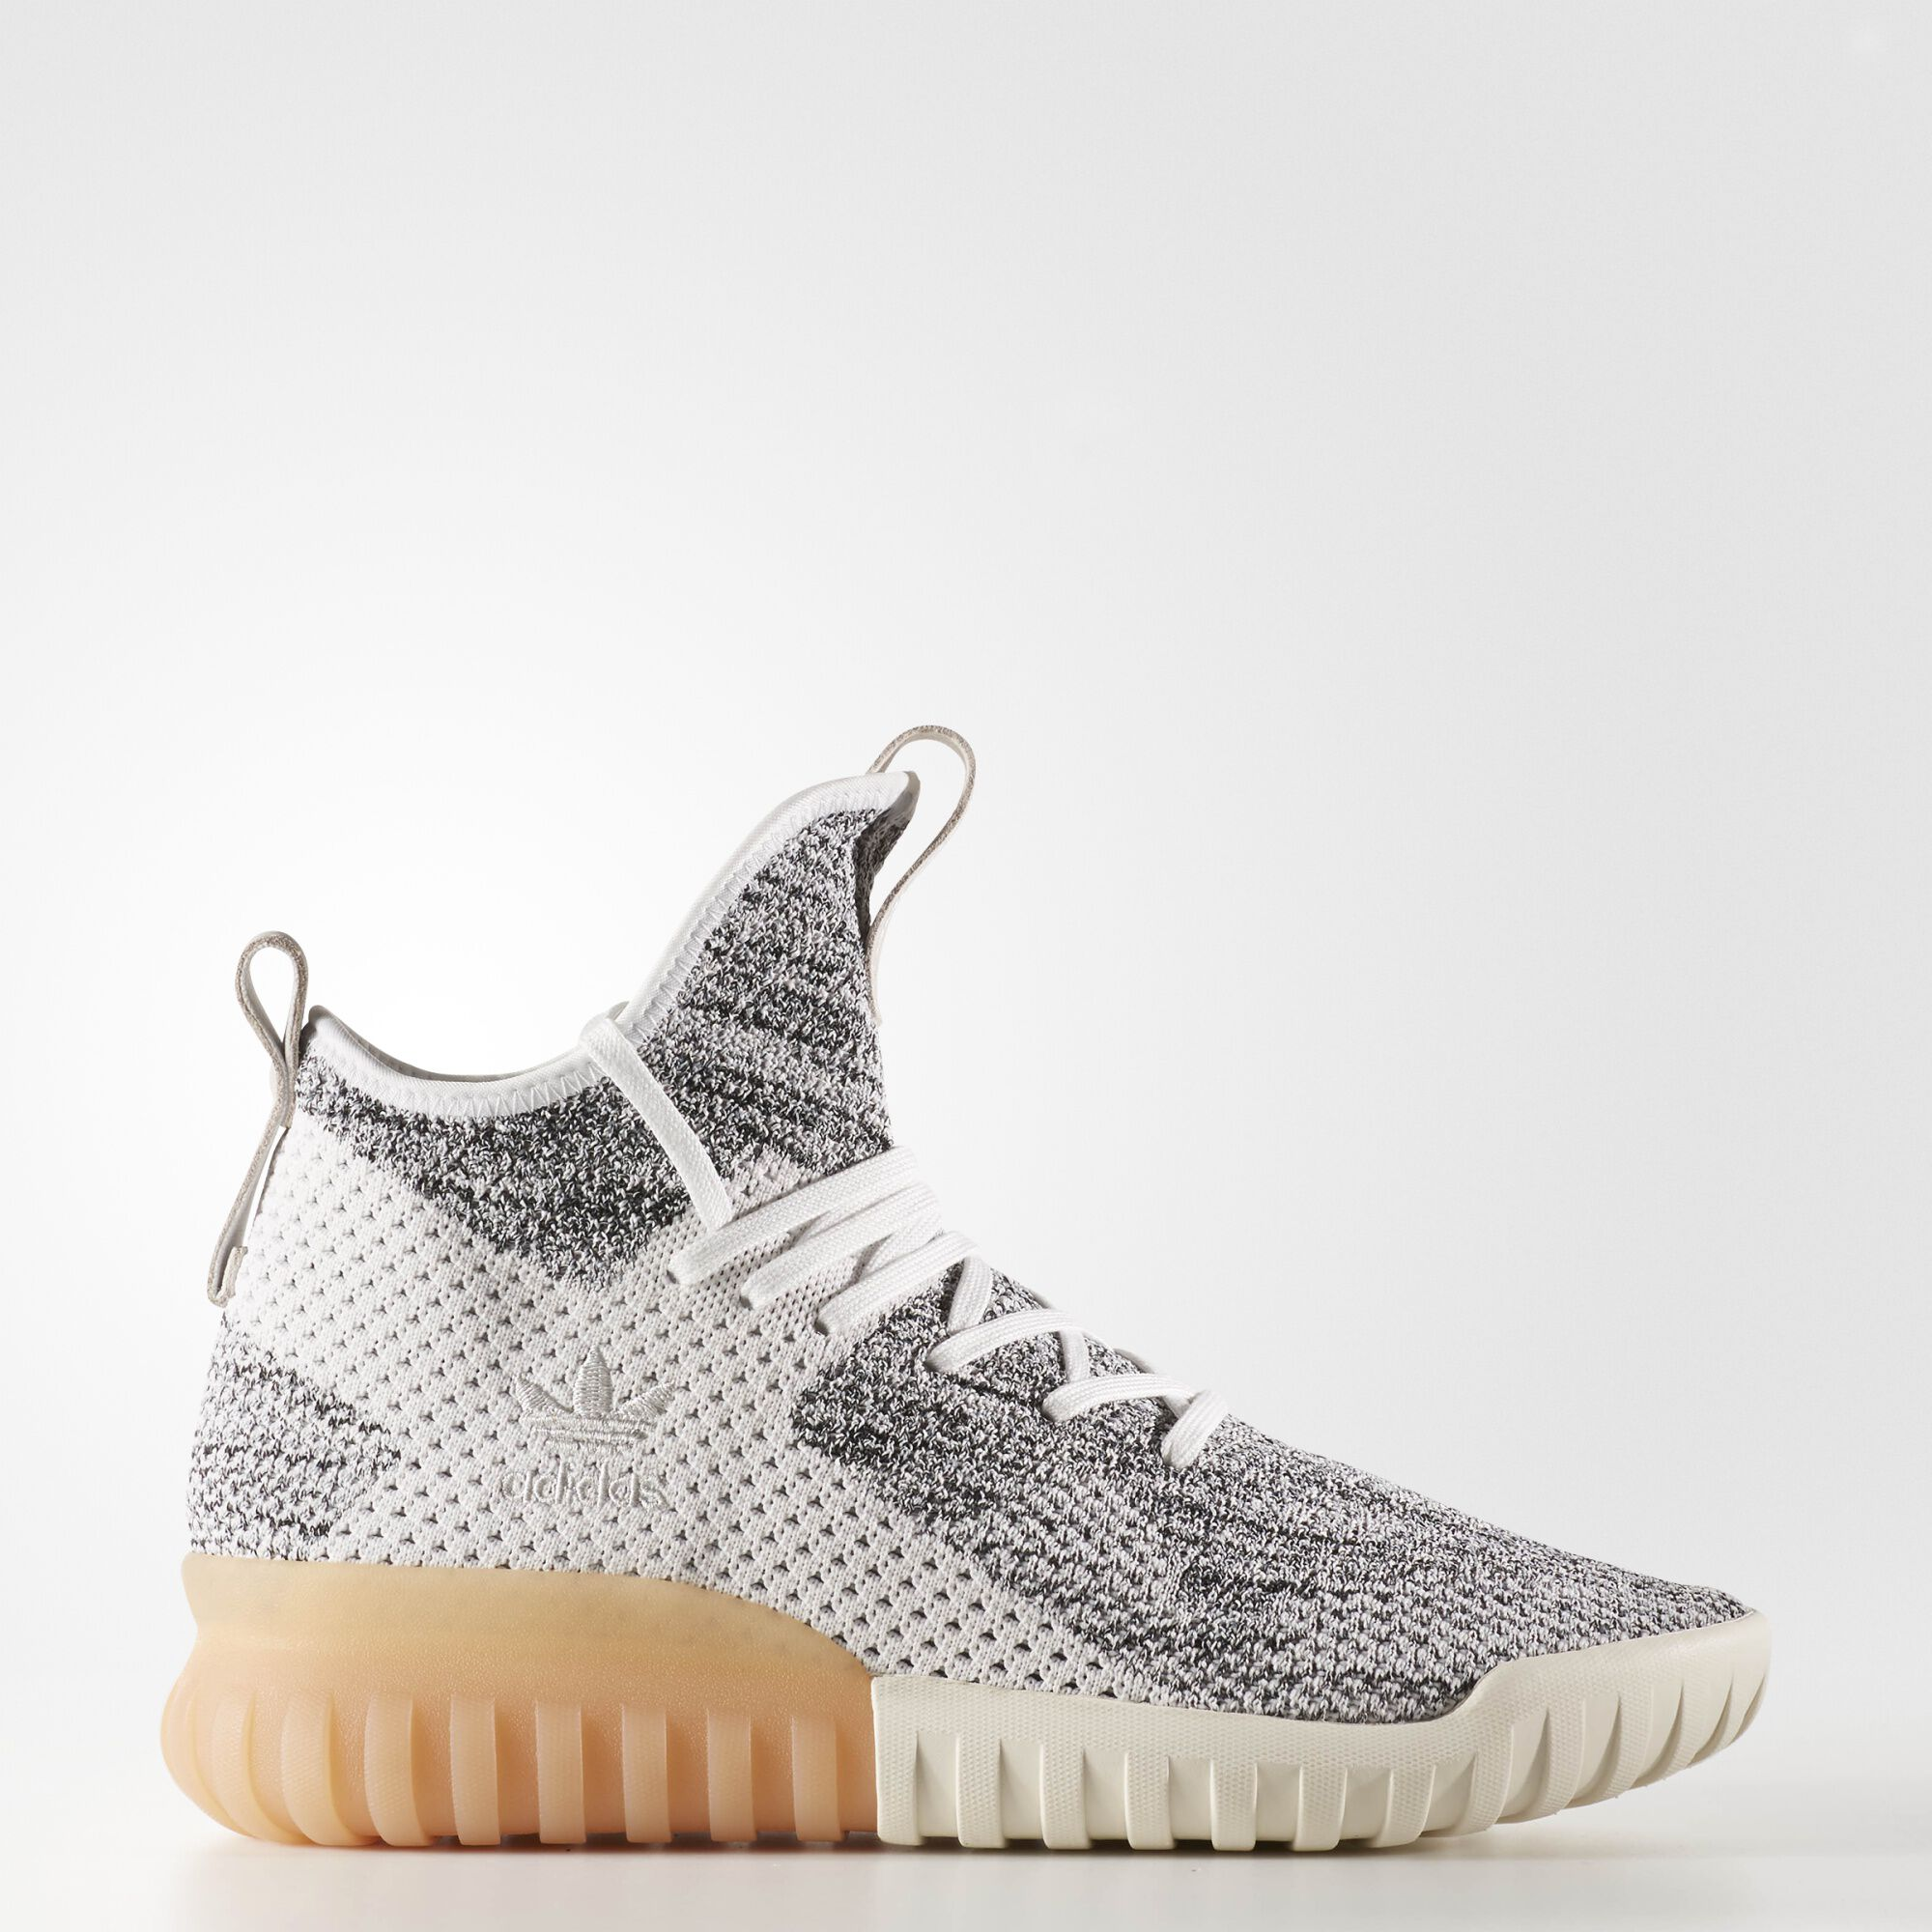 Tubular X, Cheap Adidas Originals Tubular X Shoes Sale 2017